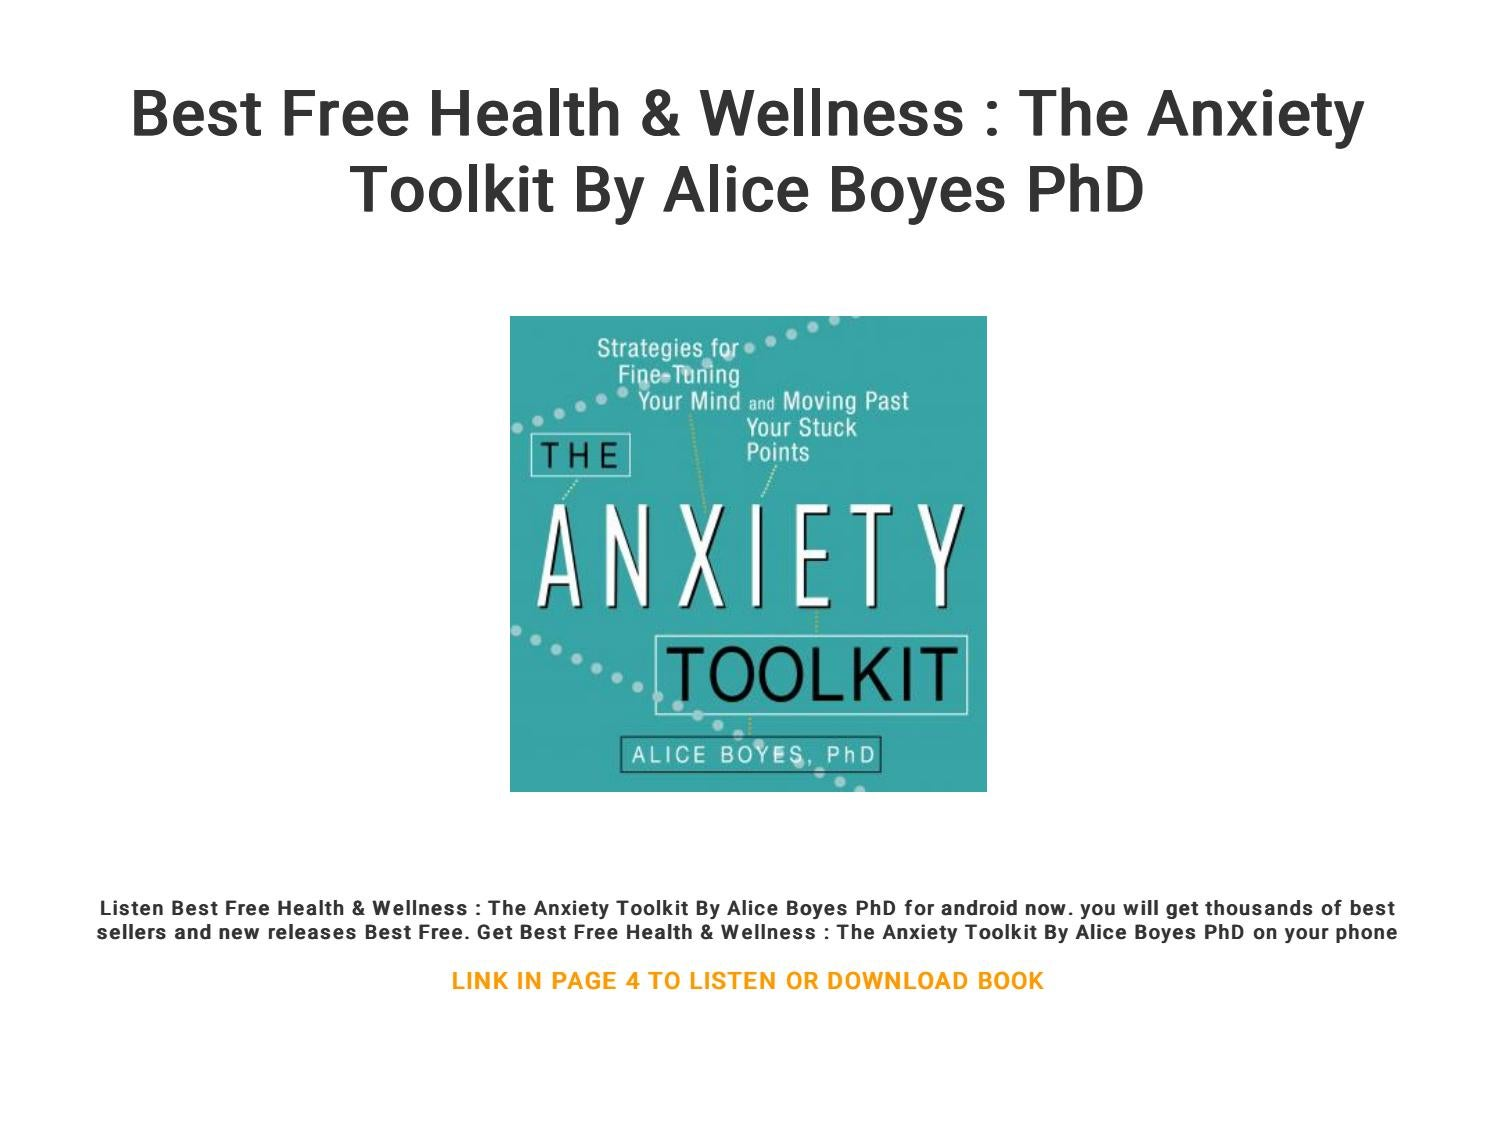 Best Free Health & Wellness : The Anxiety Toolkit By Alice